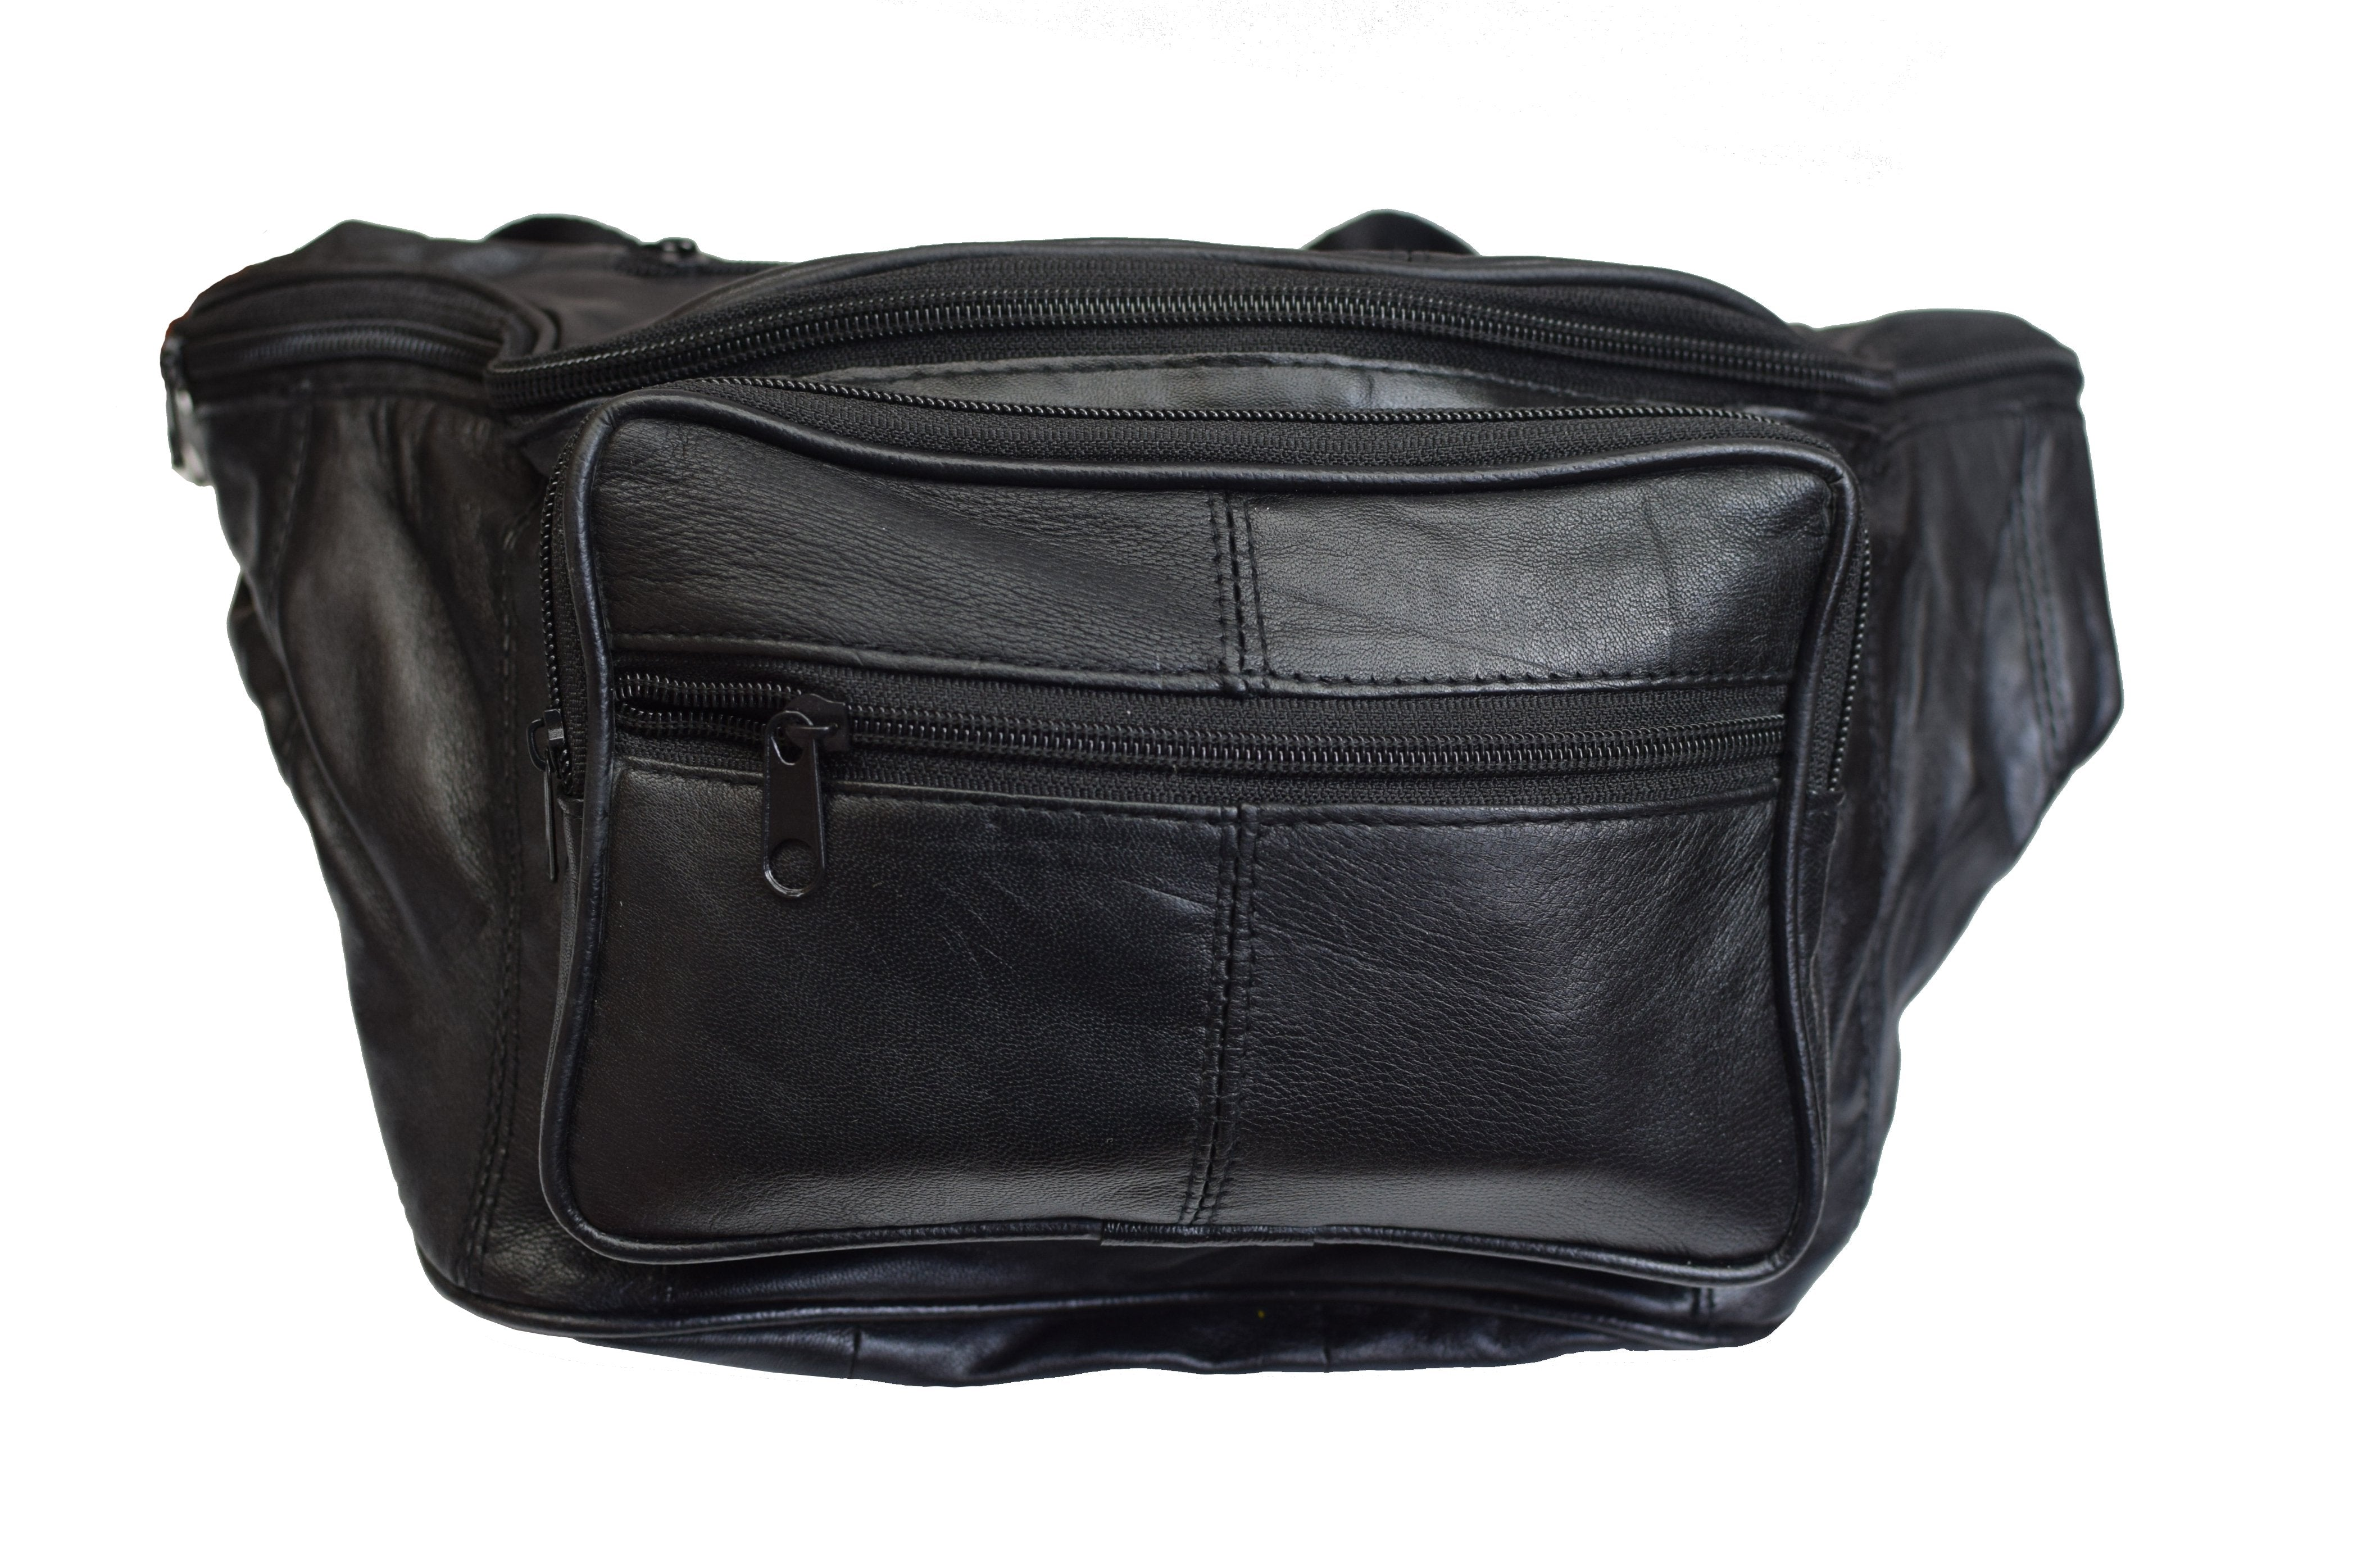 5e82fc10a3c ... Leather Concealed Carry Weapon Waist Pouch Fanny Pack Gun Conceal Purse  for Both Men & Women 632. Previous